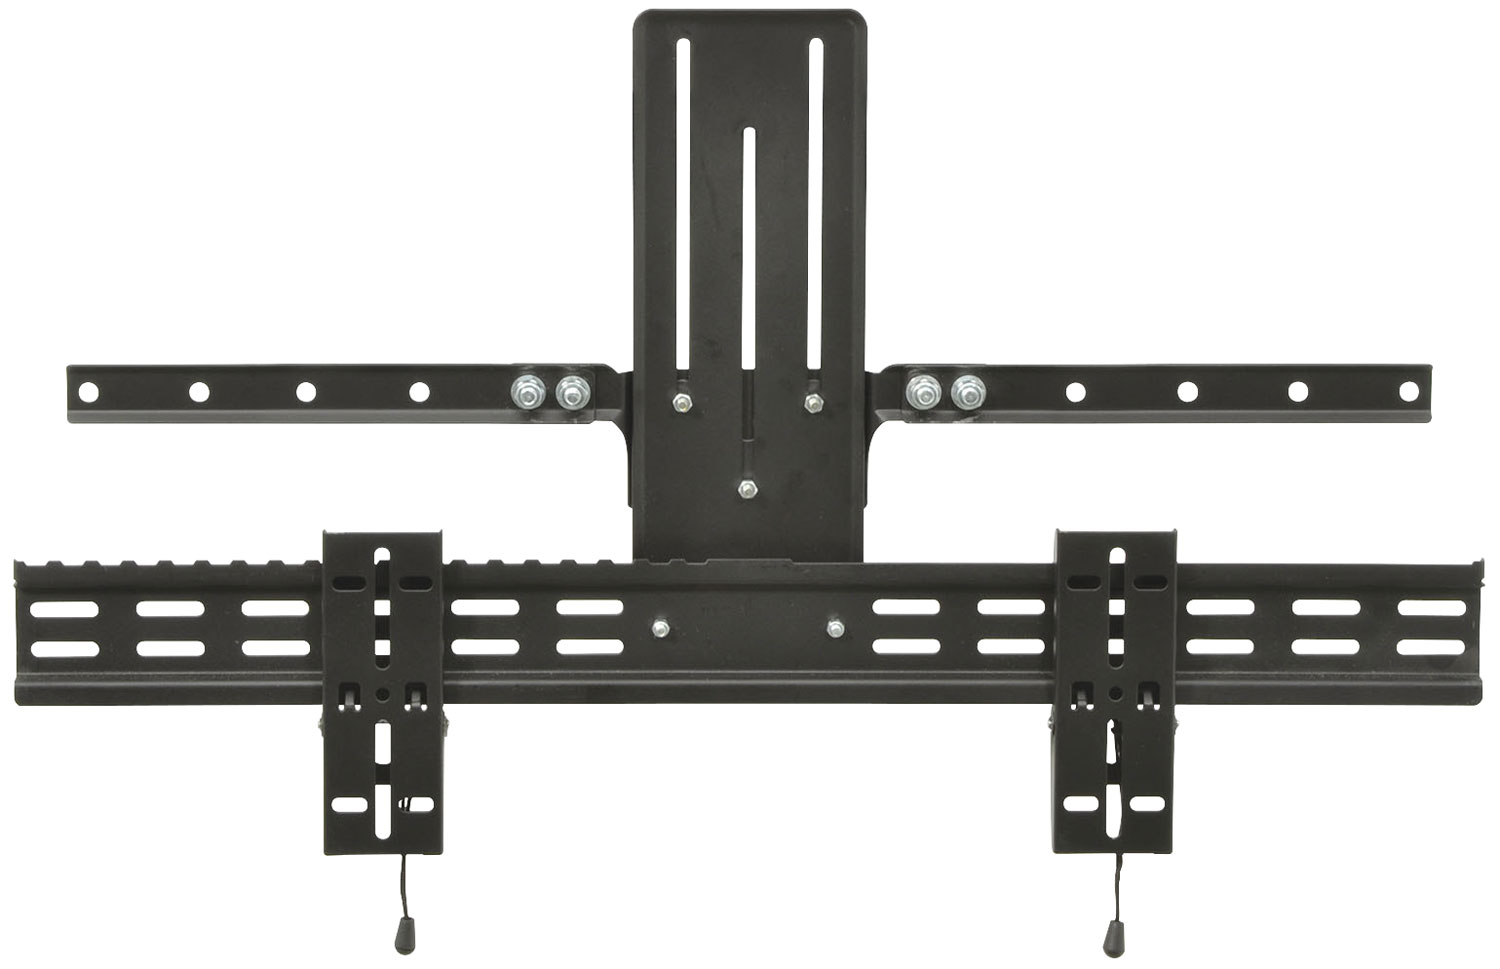 Soundbar bracket adpator for TV bracket